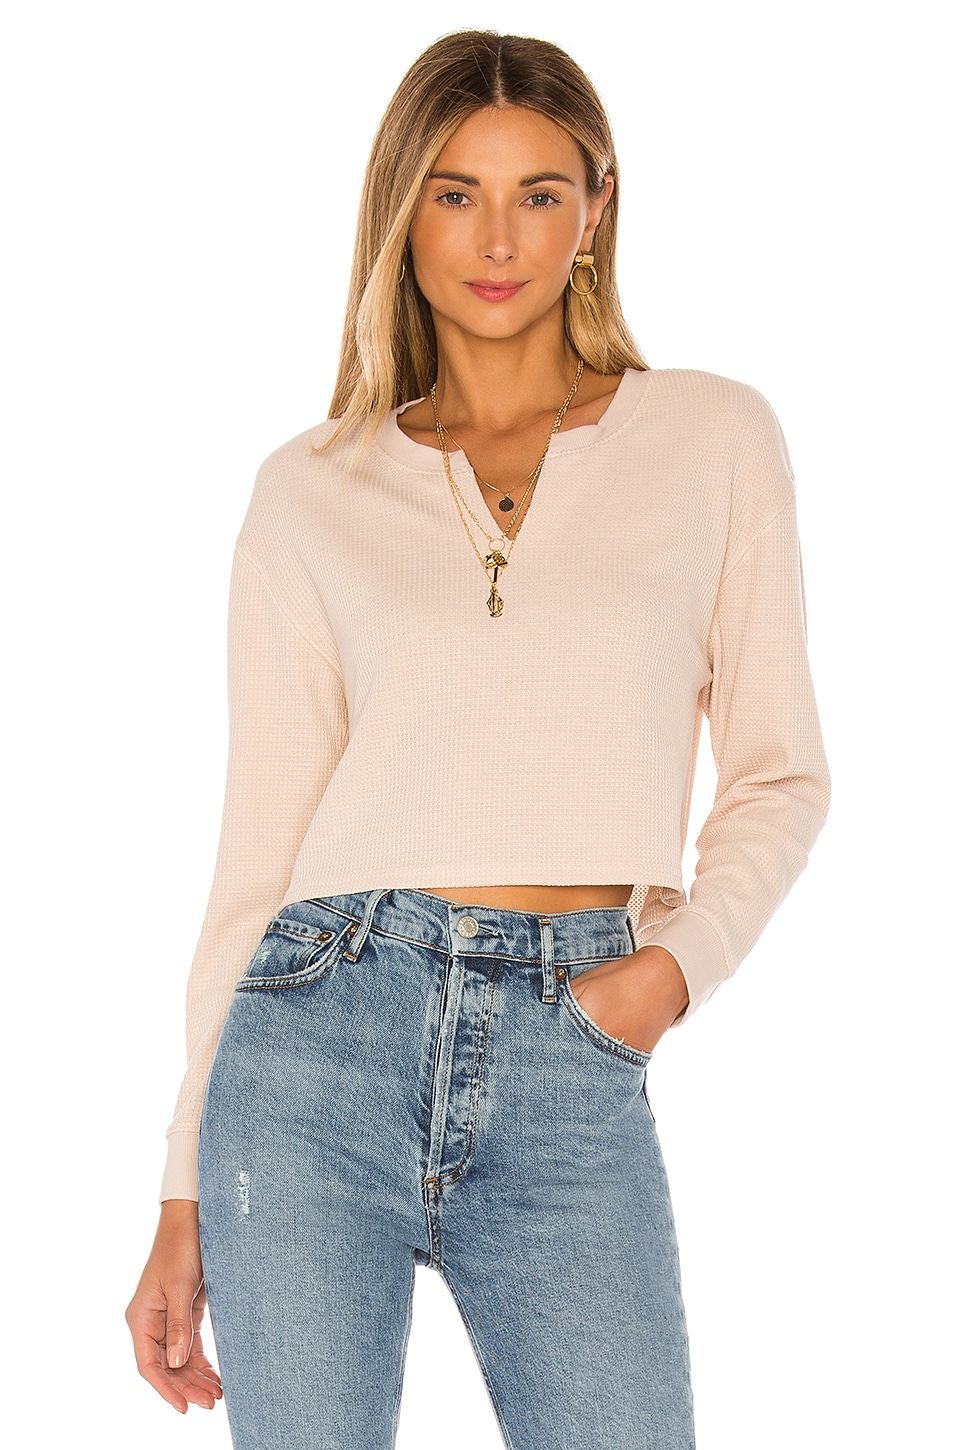 Tularosa The Bette Top en Eggshell White